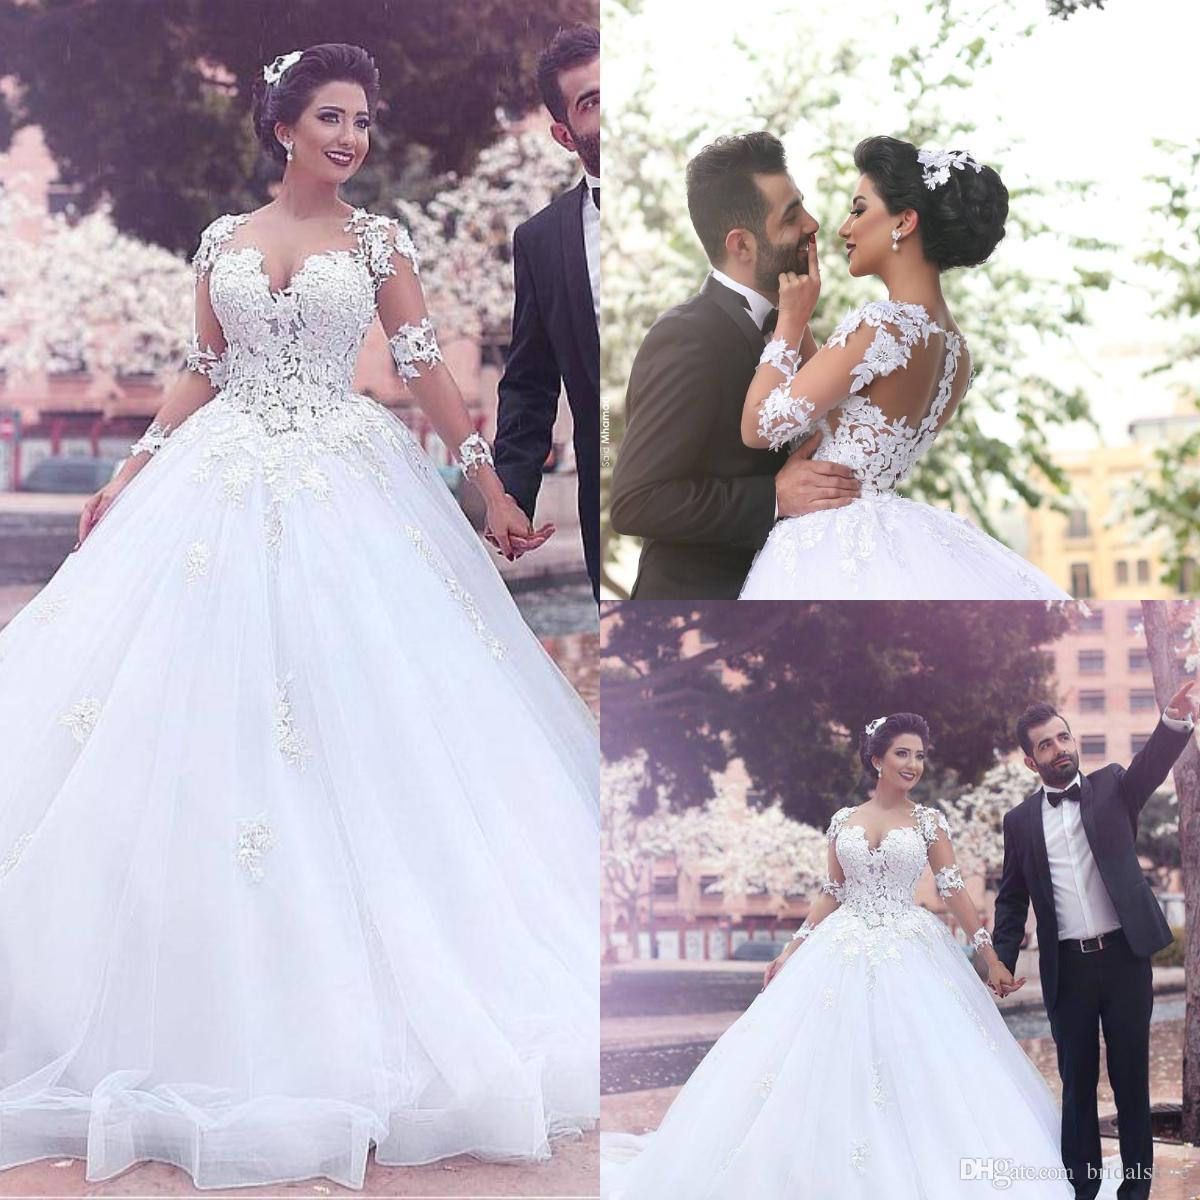 Classical White Princess Ball Gown Wedding Dresses With Sleeve Lace Floral Affordable Organza Saudi Arabic Bridal Gowns Vintage Puffy Bride: Black Ball Gown Princess Wedding Dresses At Reisefeber.org